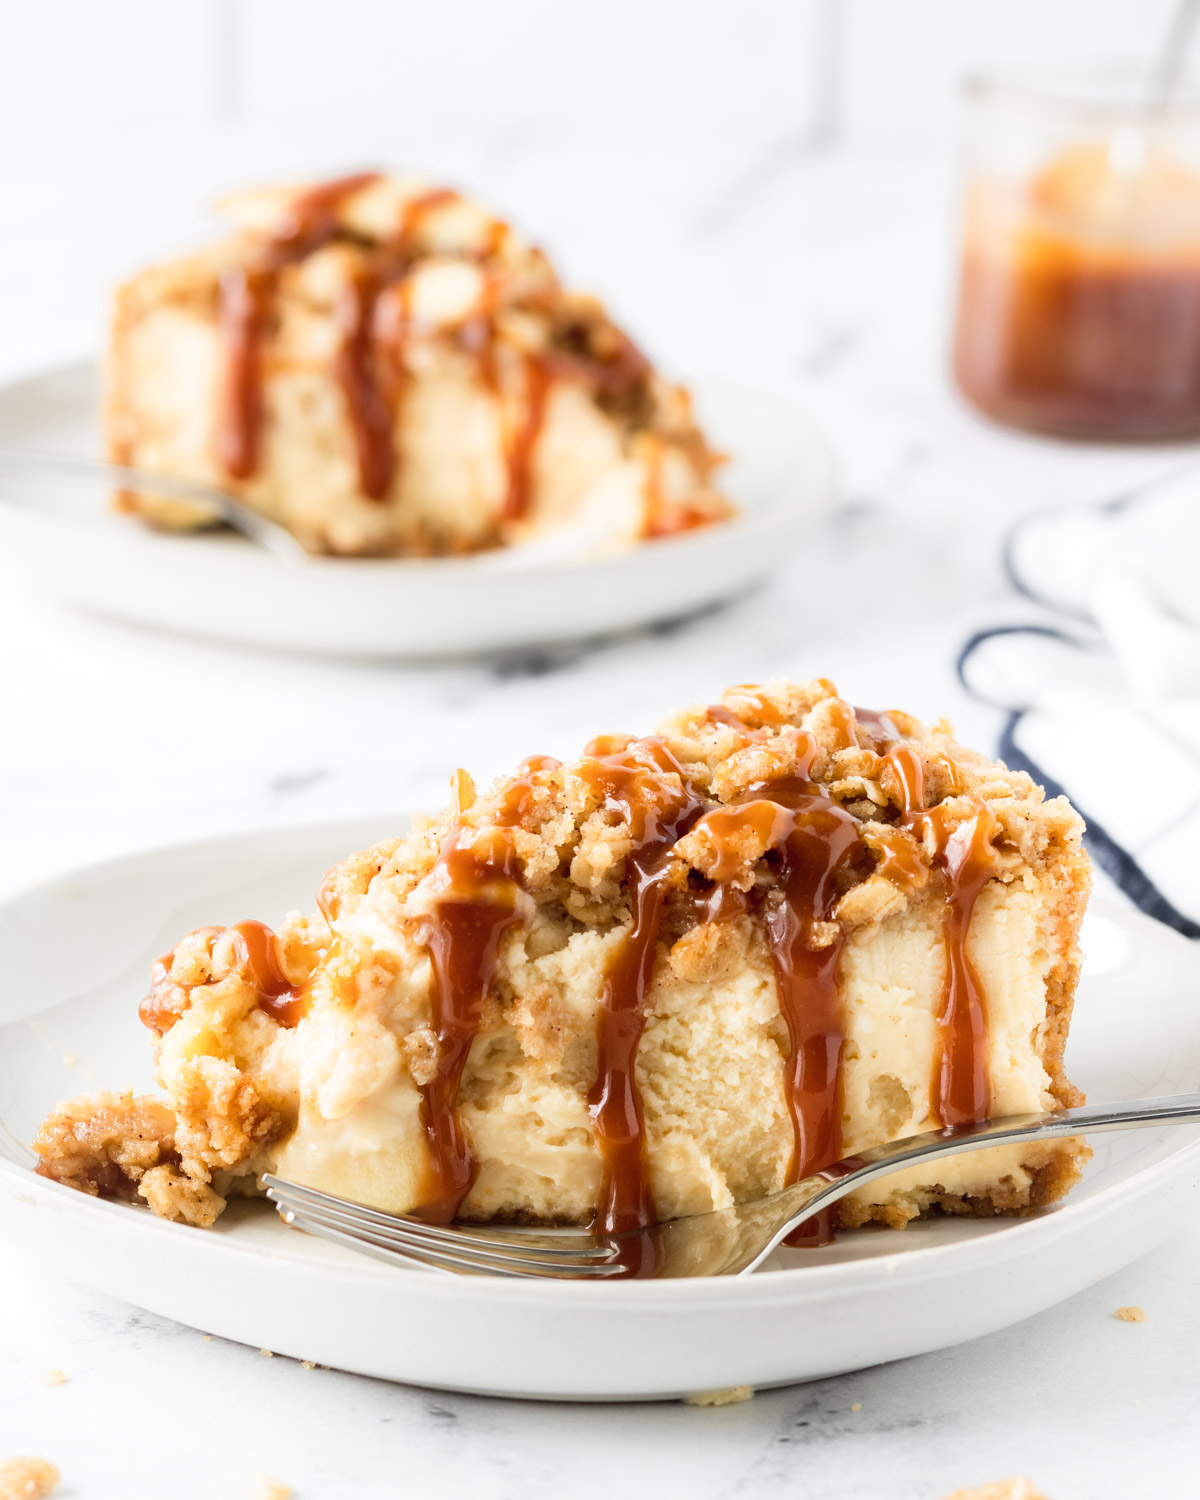 Two slices of cheesecake with caramel dropping down.